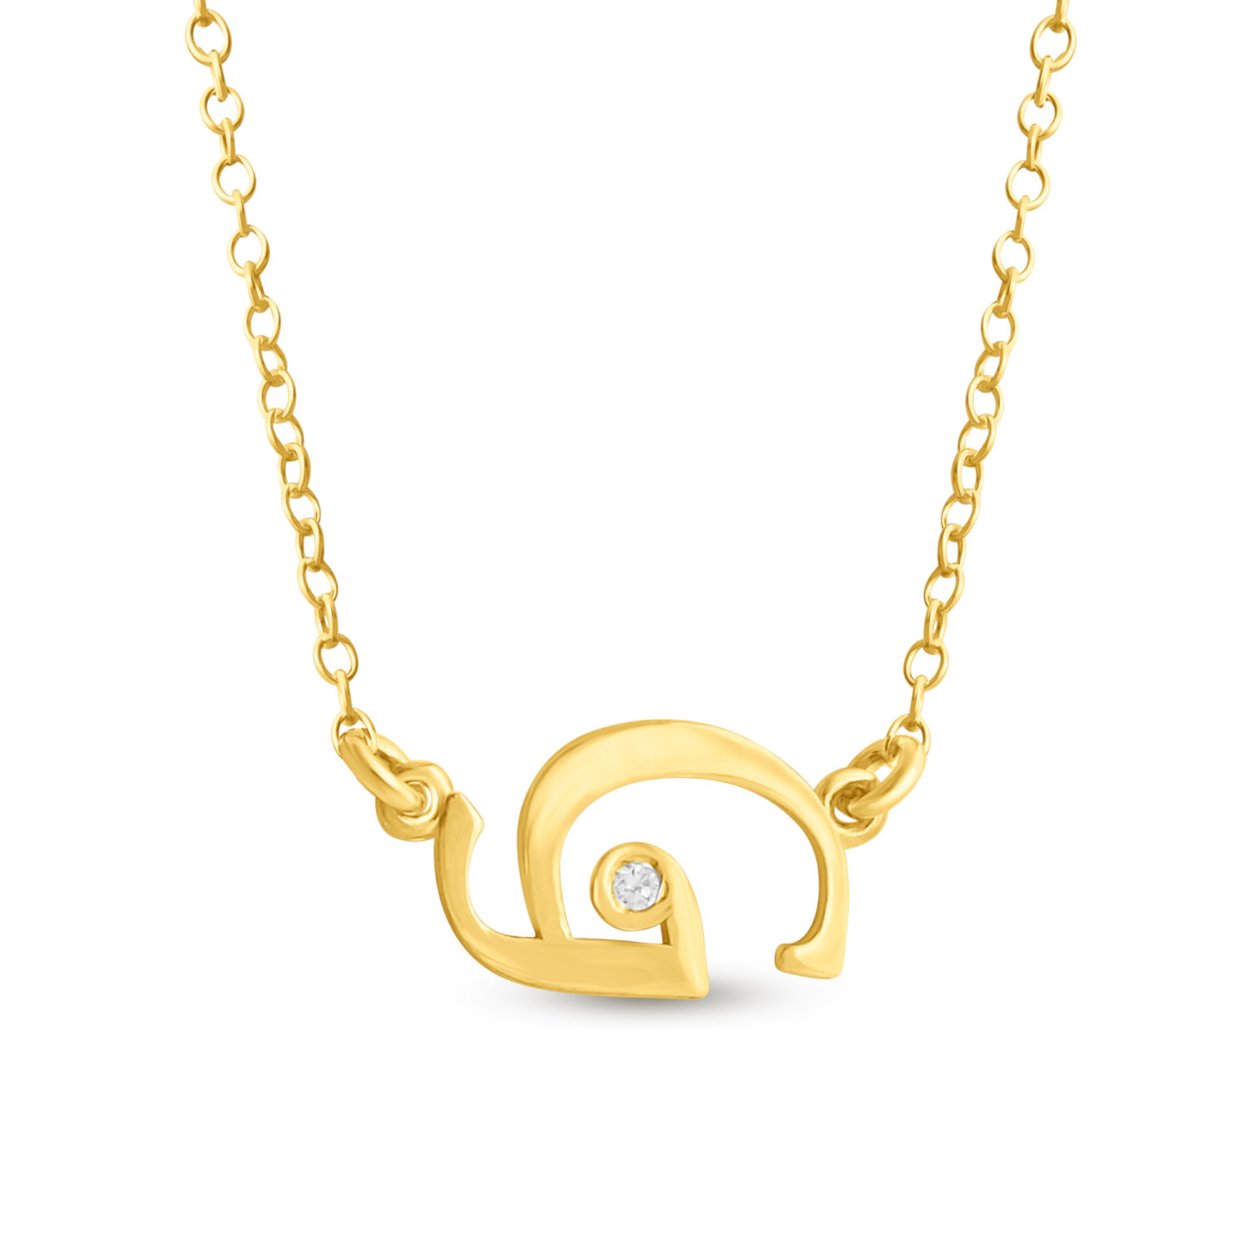 Sideways Initial Script Letter G With Cubic Zirconia Stone Charm Pendant Necklace #14k Gold Plated Over 925 Sterling Silver #azaggi N0853g_g 12 Child